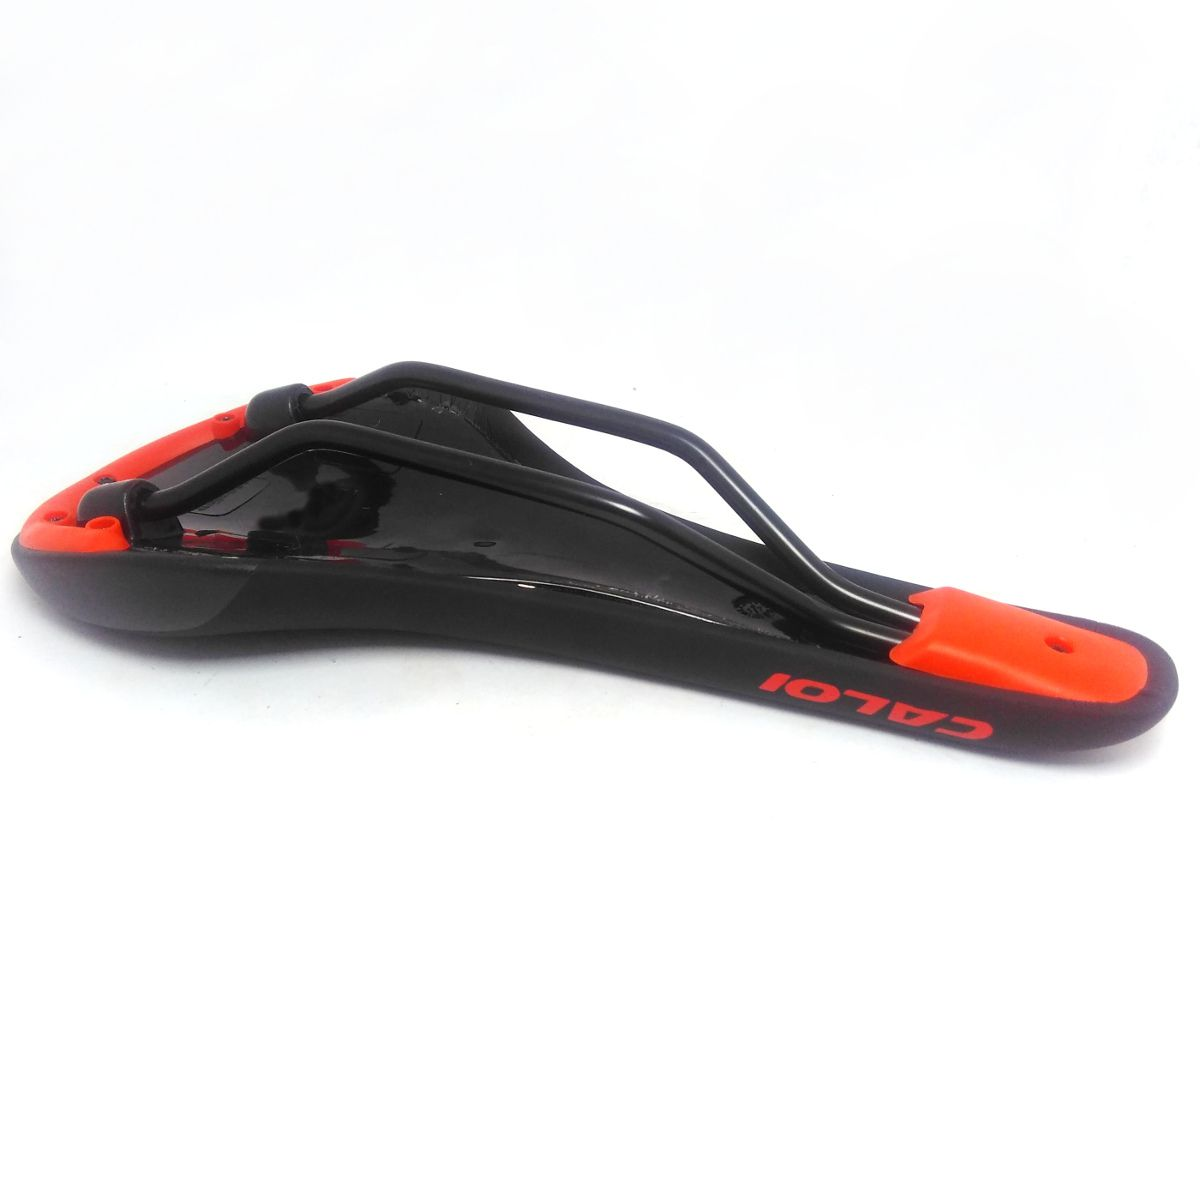 Selim de bike Banco Selle Royal Caloi